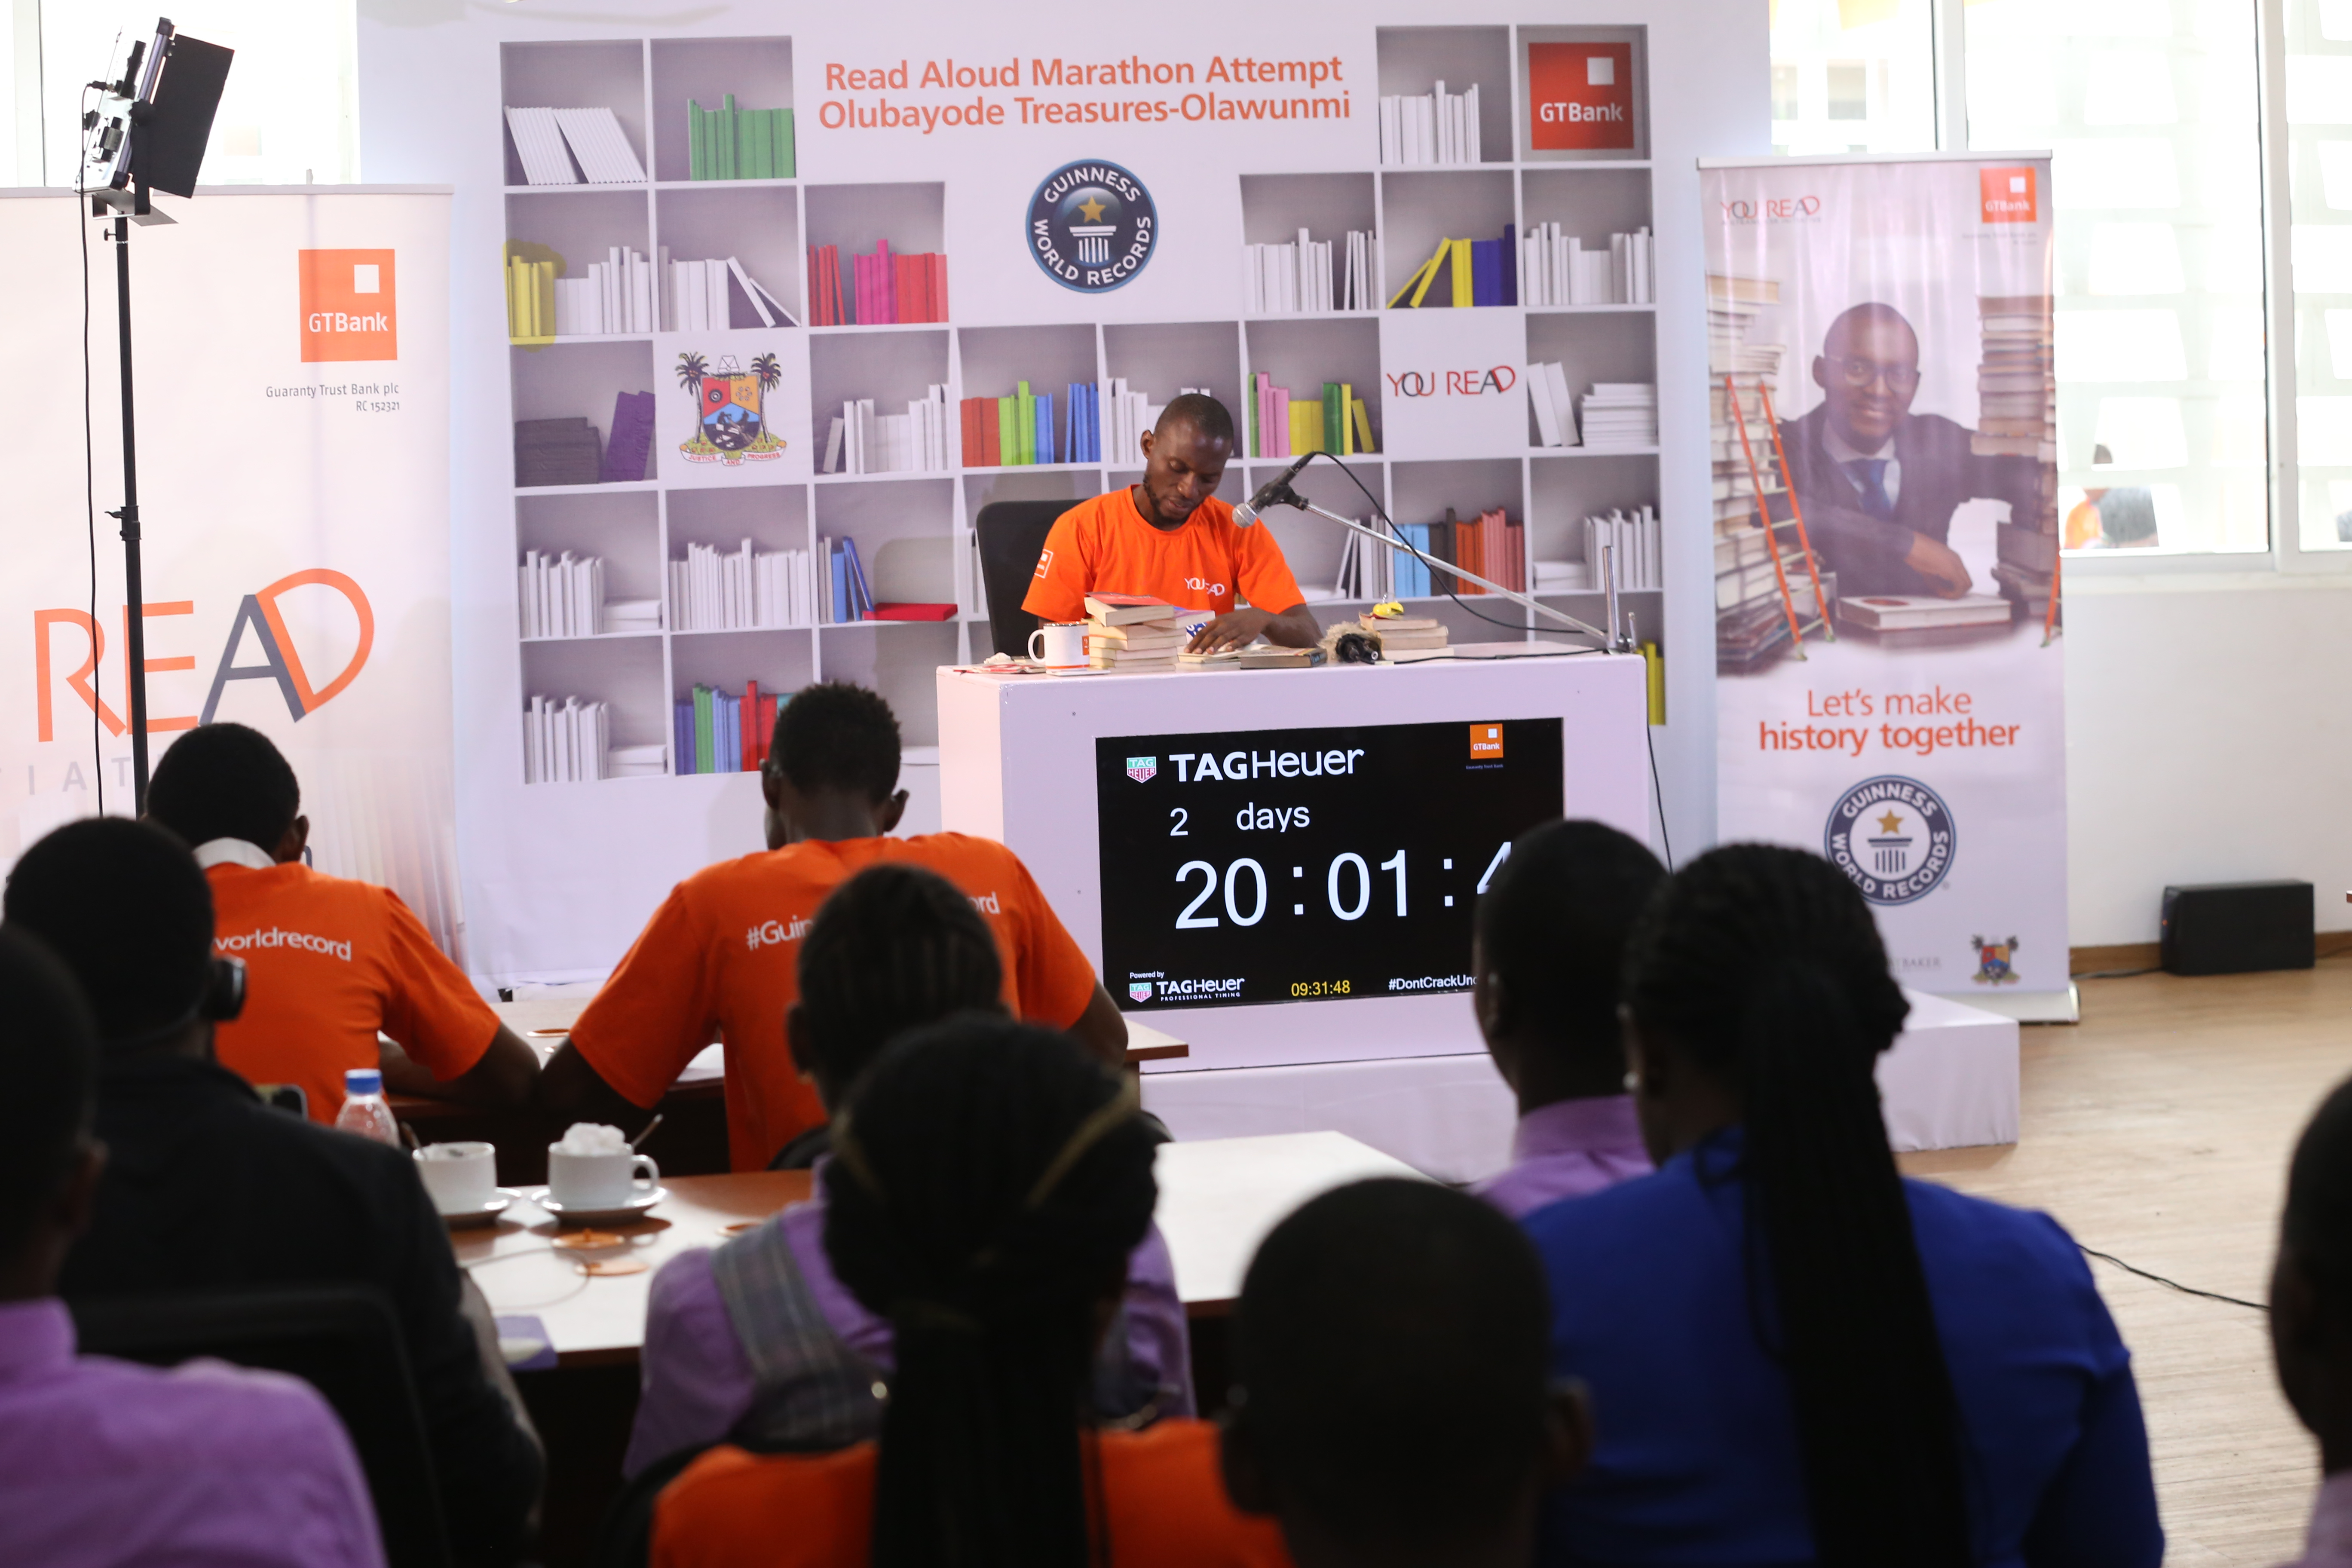 Olubayode breaks longest reading marathon record